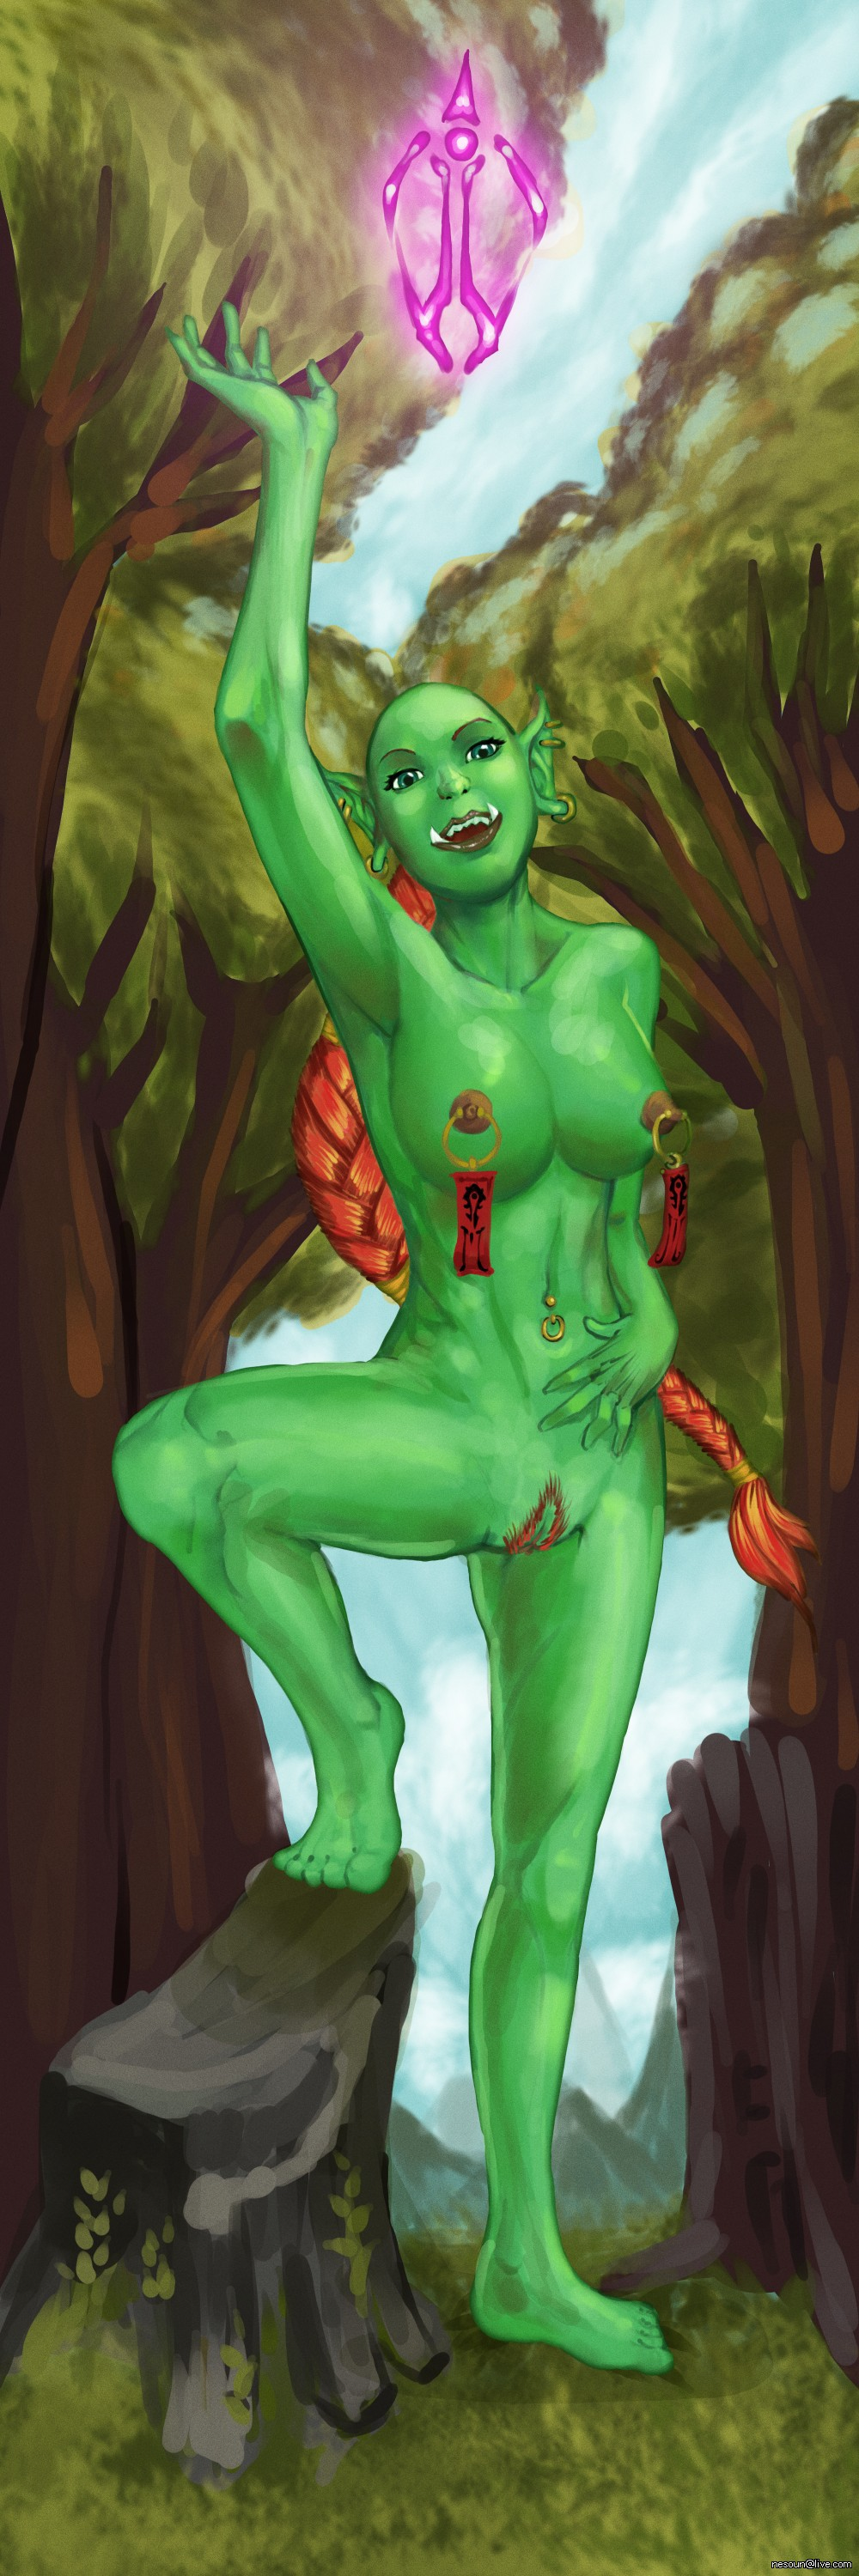 Hot naked world of warcraft orcs nude image